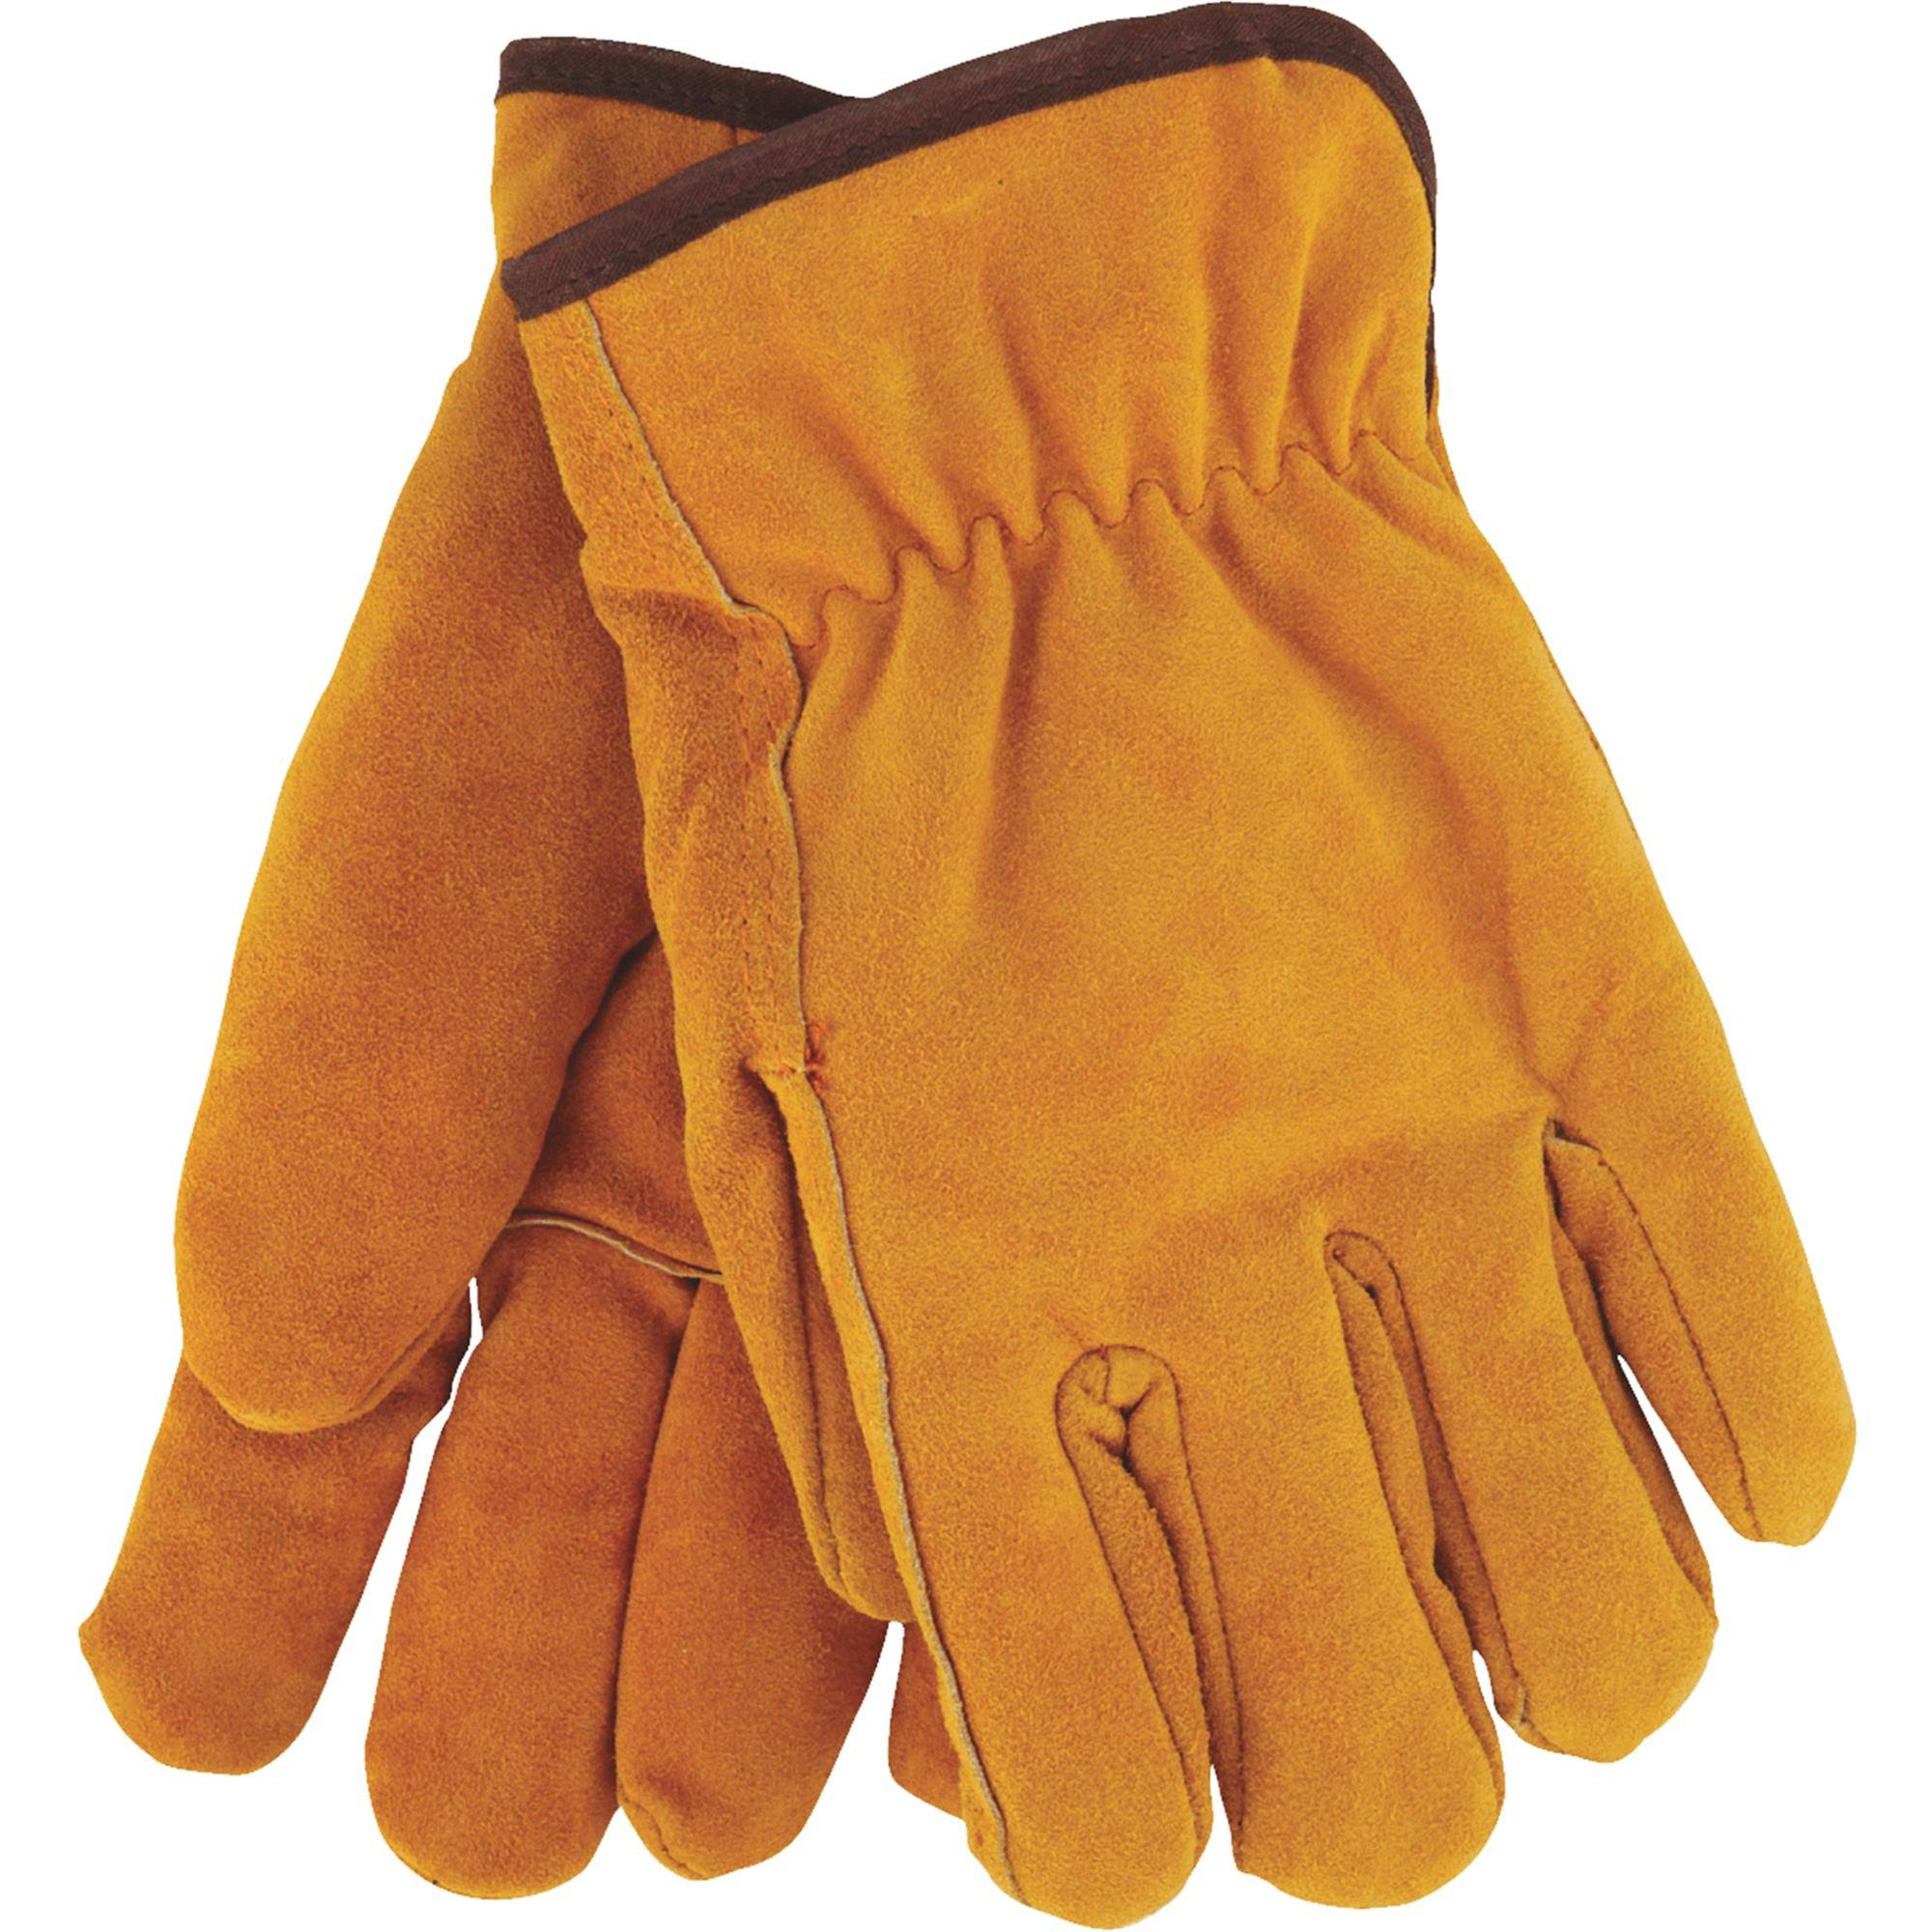 Do It Lined Leather Winter Work Glove 706490